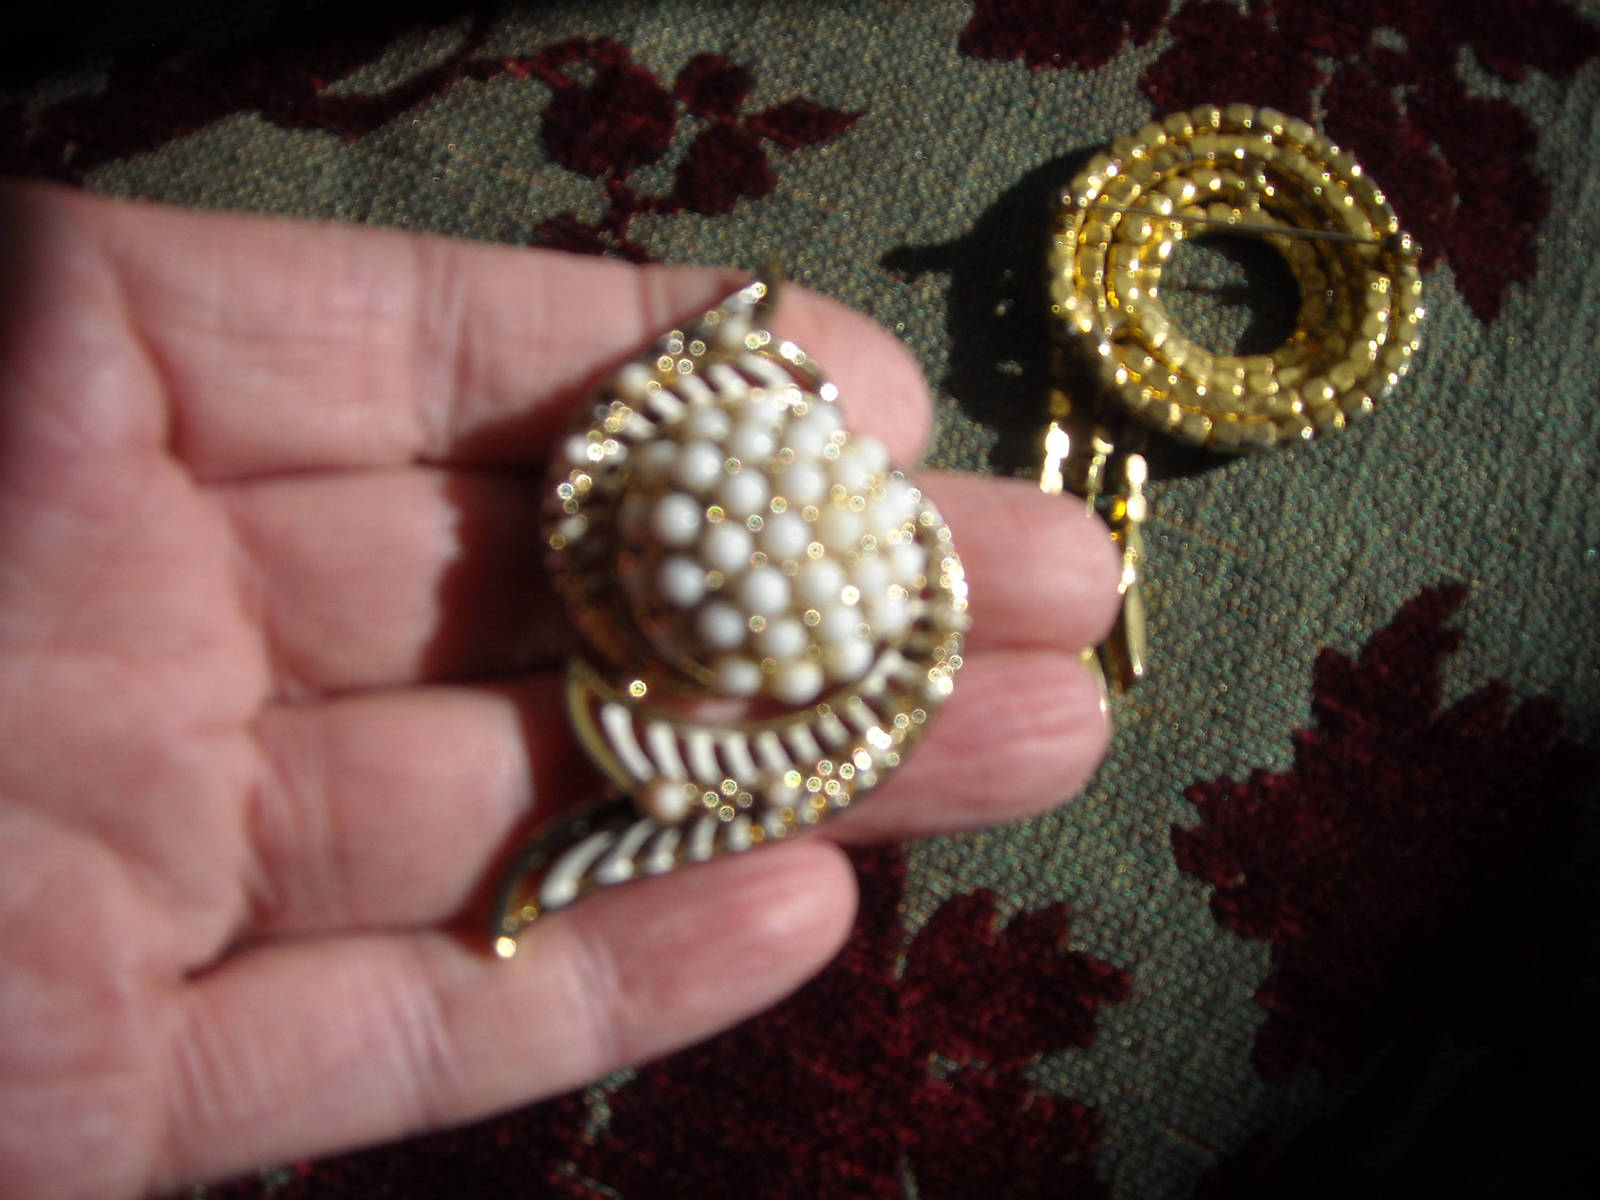 Vintage Brooch Pins White Milk Glass Rhinestone Gold Tone (2)  image 4